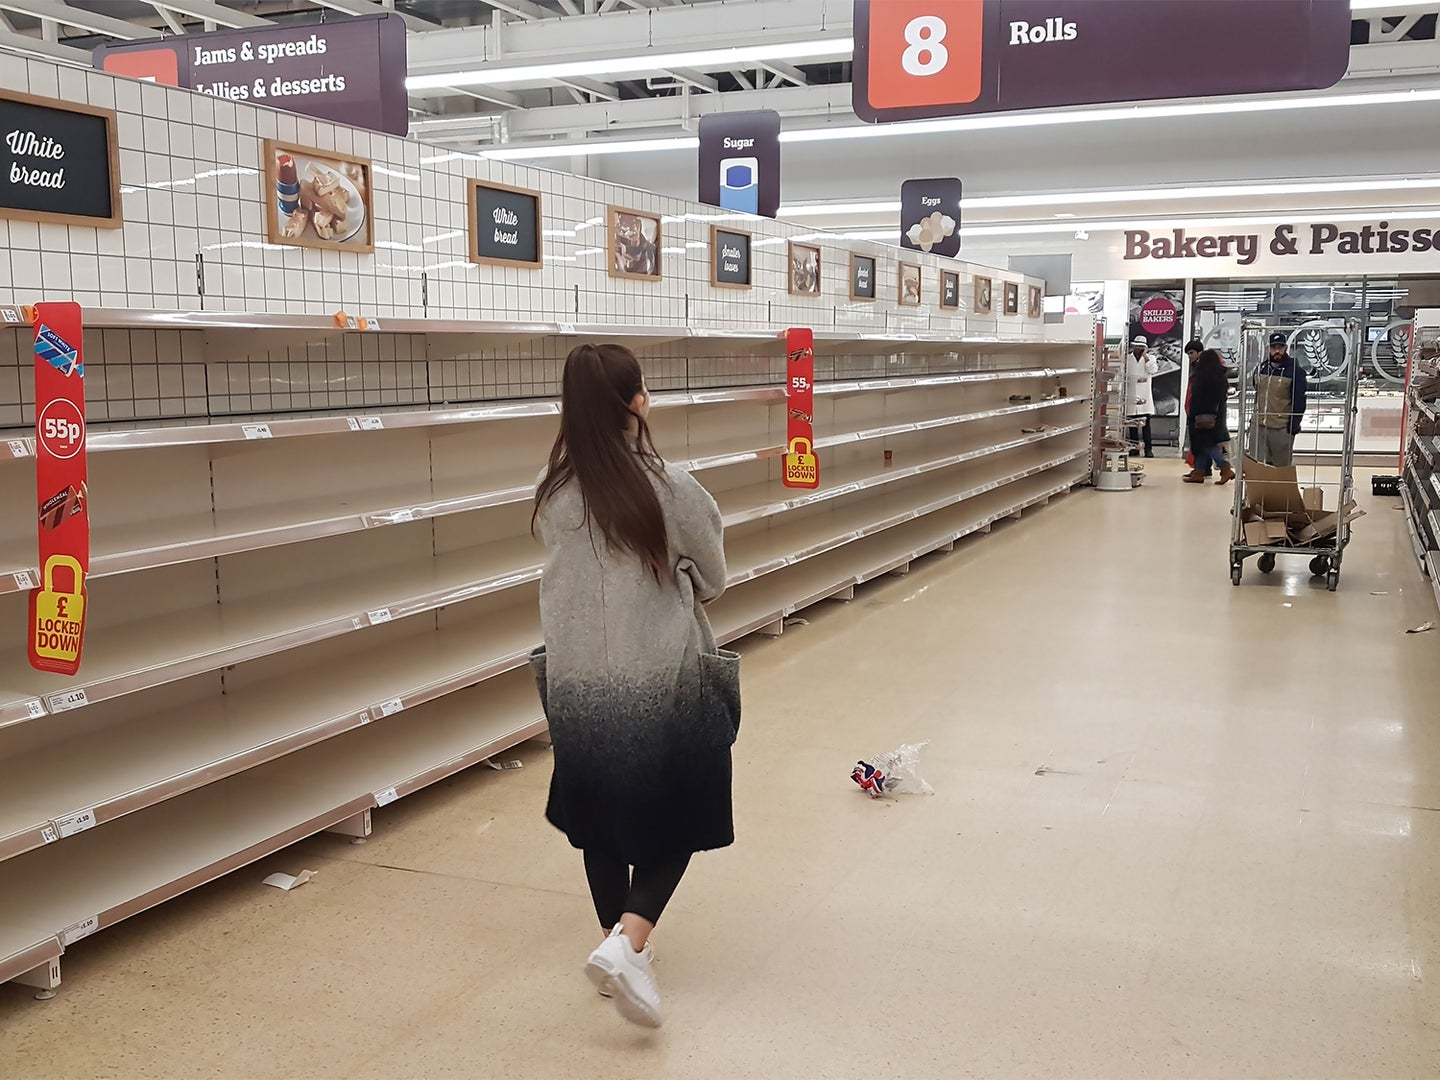 A woman walks through a grocery store aisle with empty shelves.